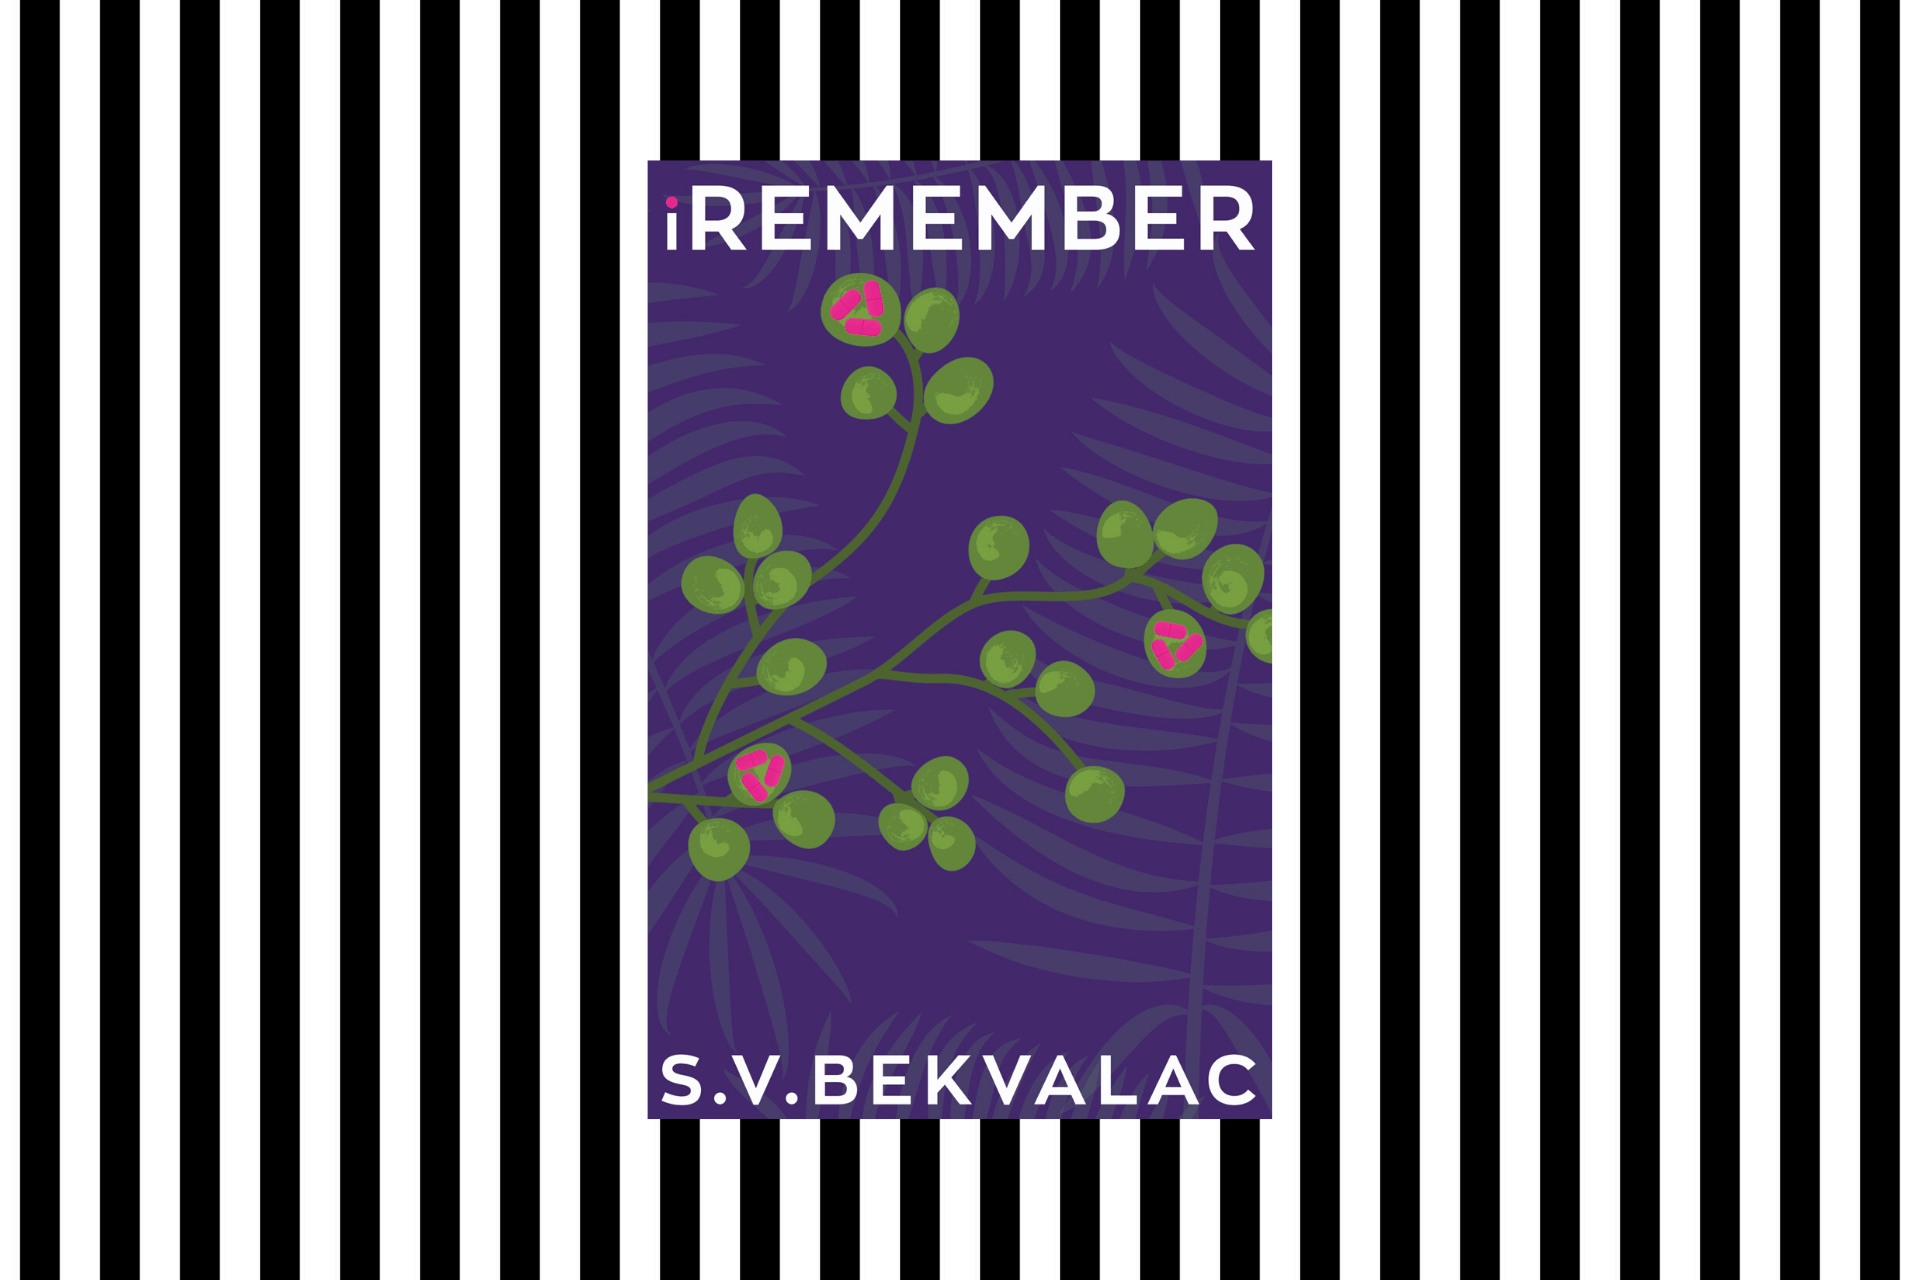 iRemember by S. V. Bekvalac